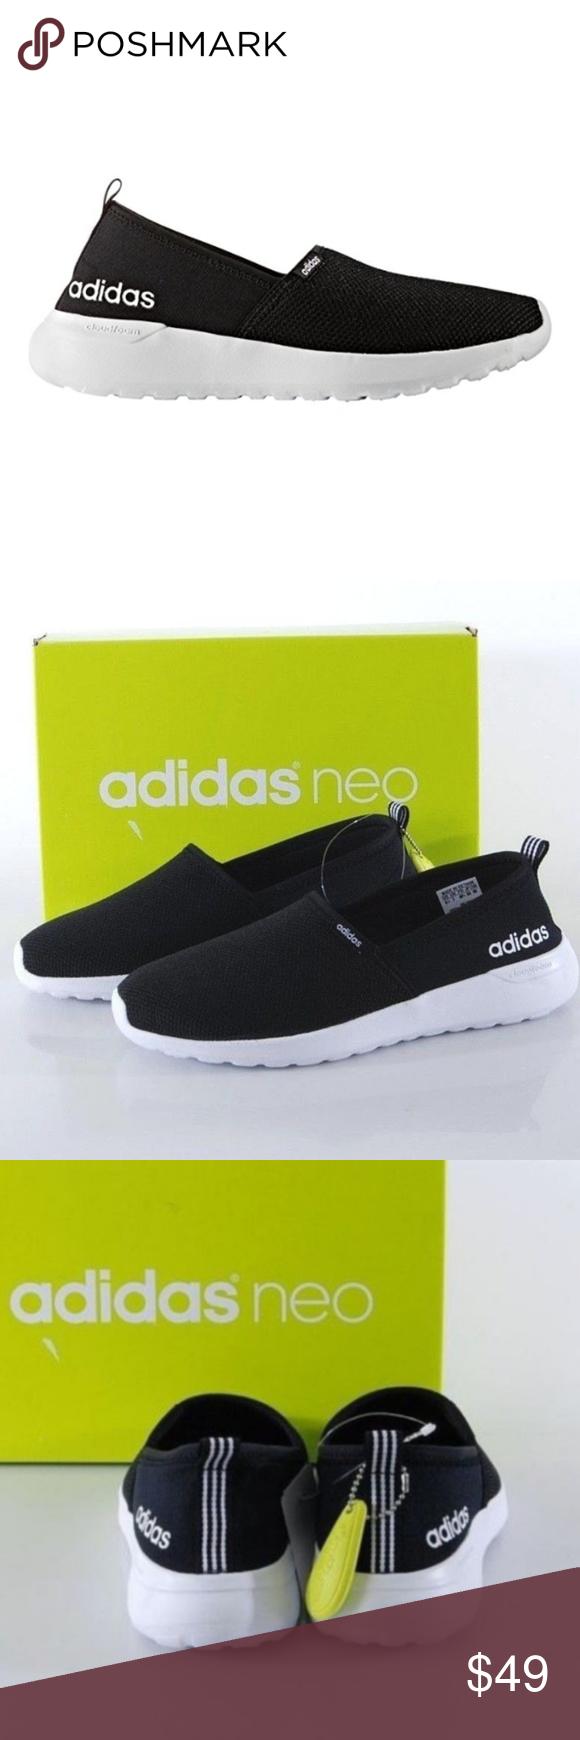 ADIDAS Slip On CloudFoam Neo Lite Racer Shoes New Without Box fd7ff7a25